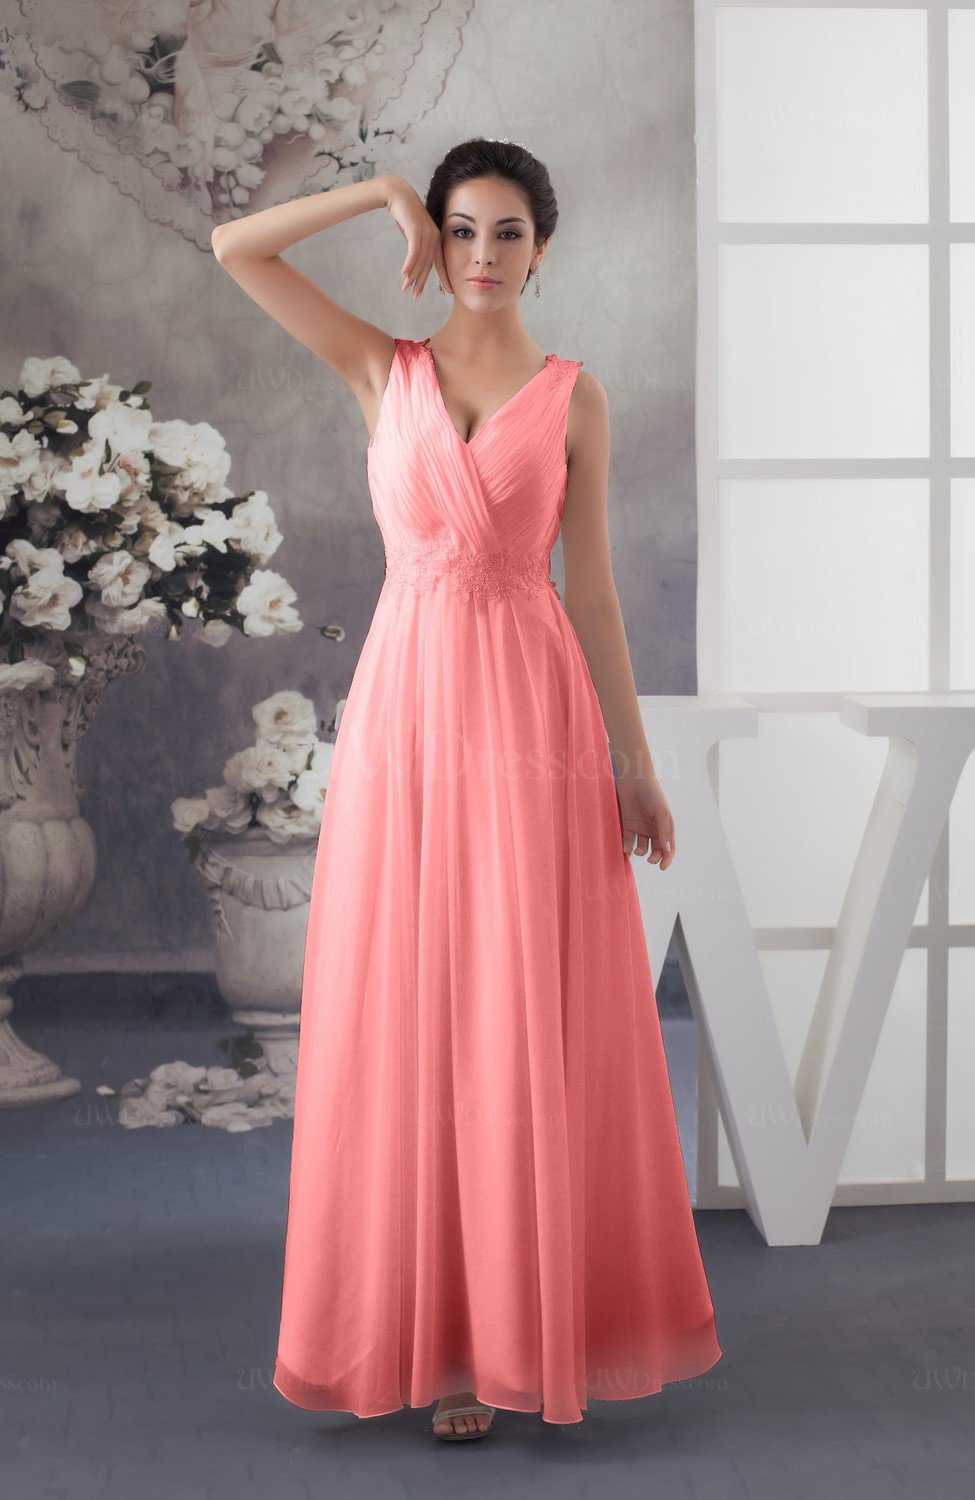 Shell pink chiffon bridesmaid dress affordable sexy western allure chiffon bridesmaid dress affordable sexy western allure sleeveless amazing ombrellifo Gallery